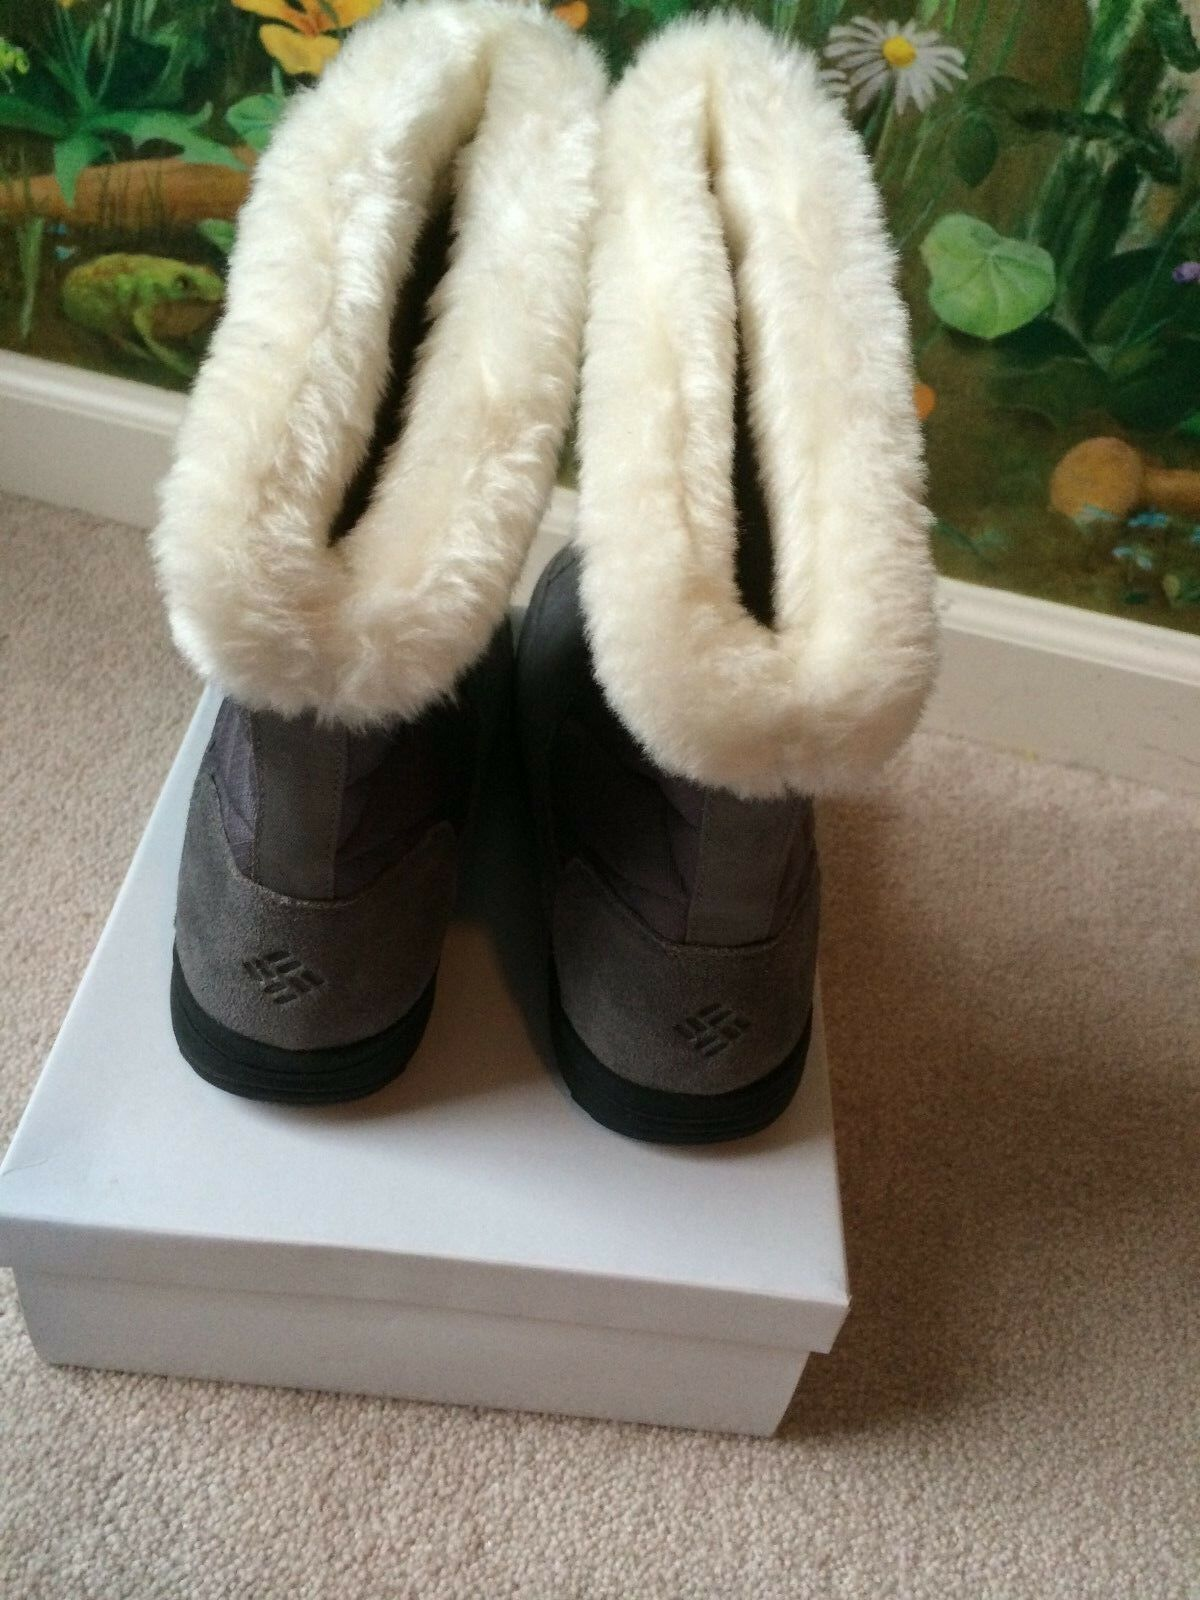 Columbia Ice Maiden Waterproof Snow Snow Snow Rain Winter Boots Slip On Size 5 NEW 5f6427